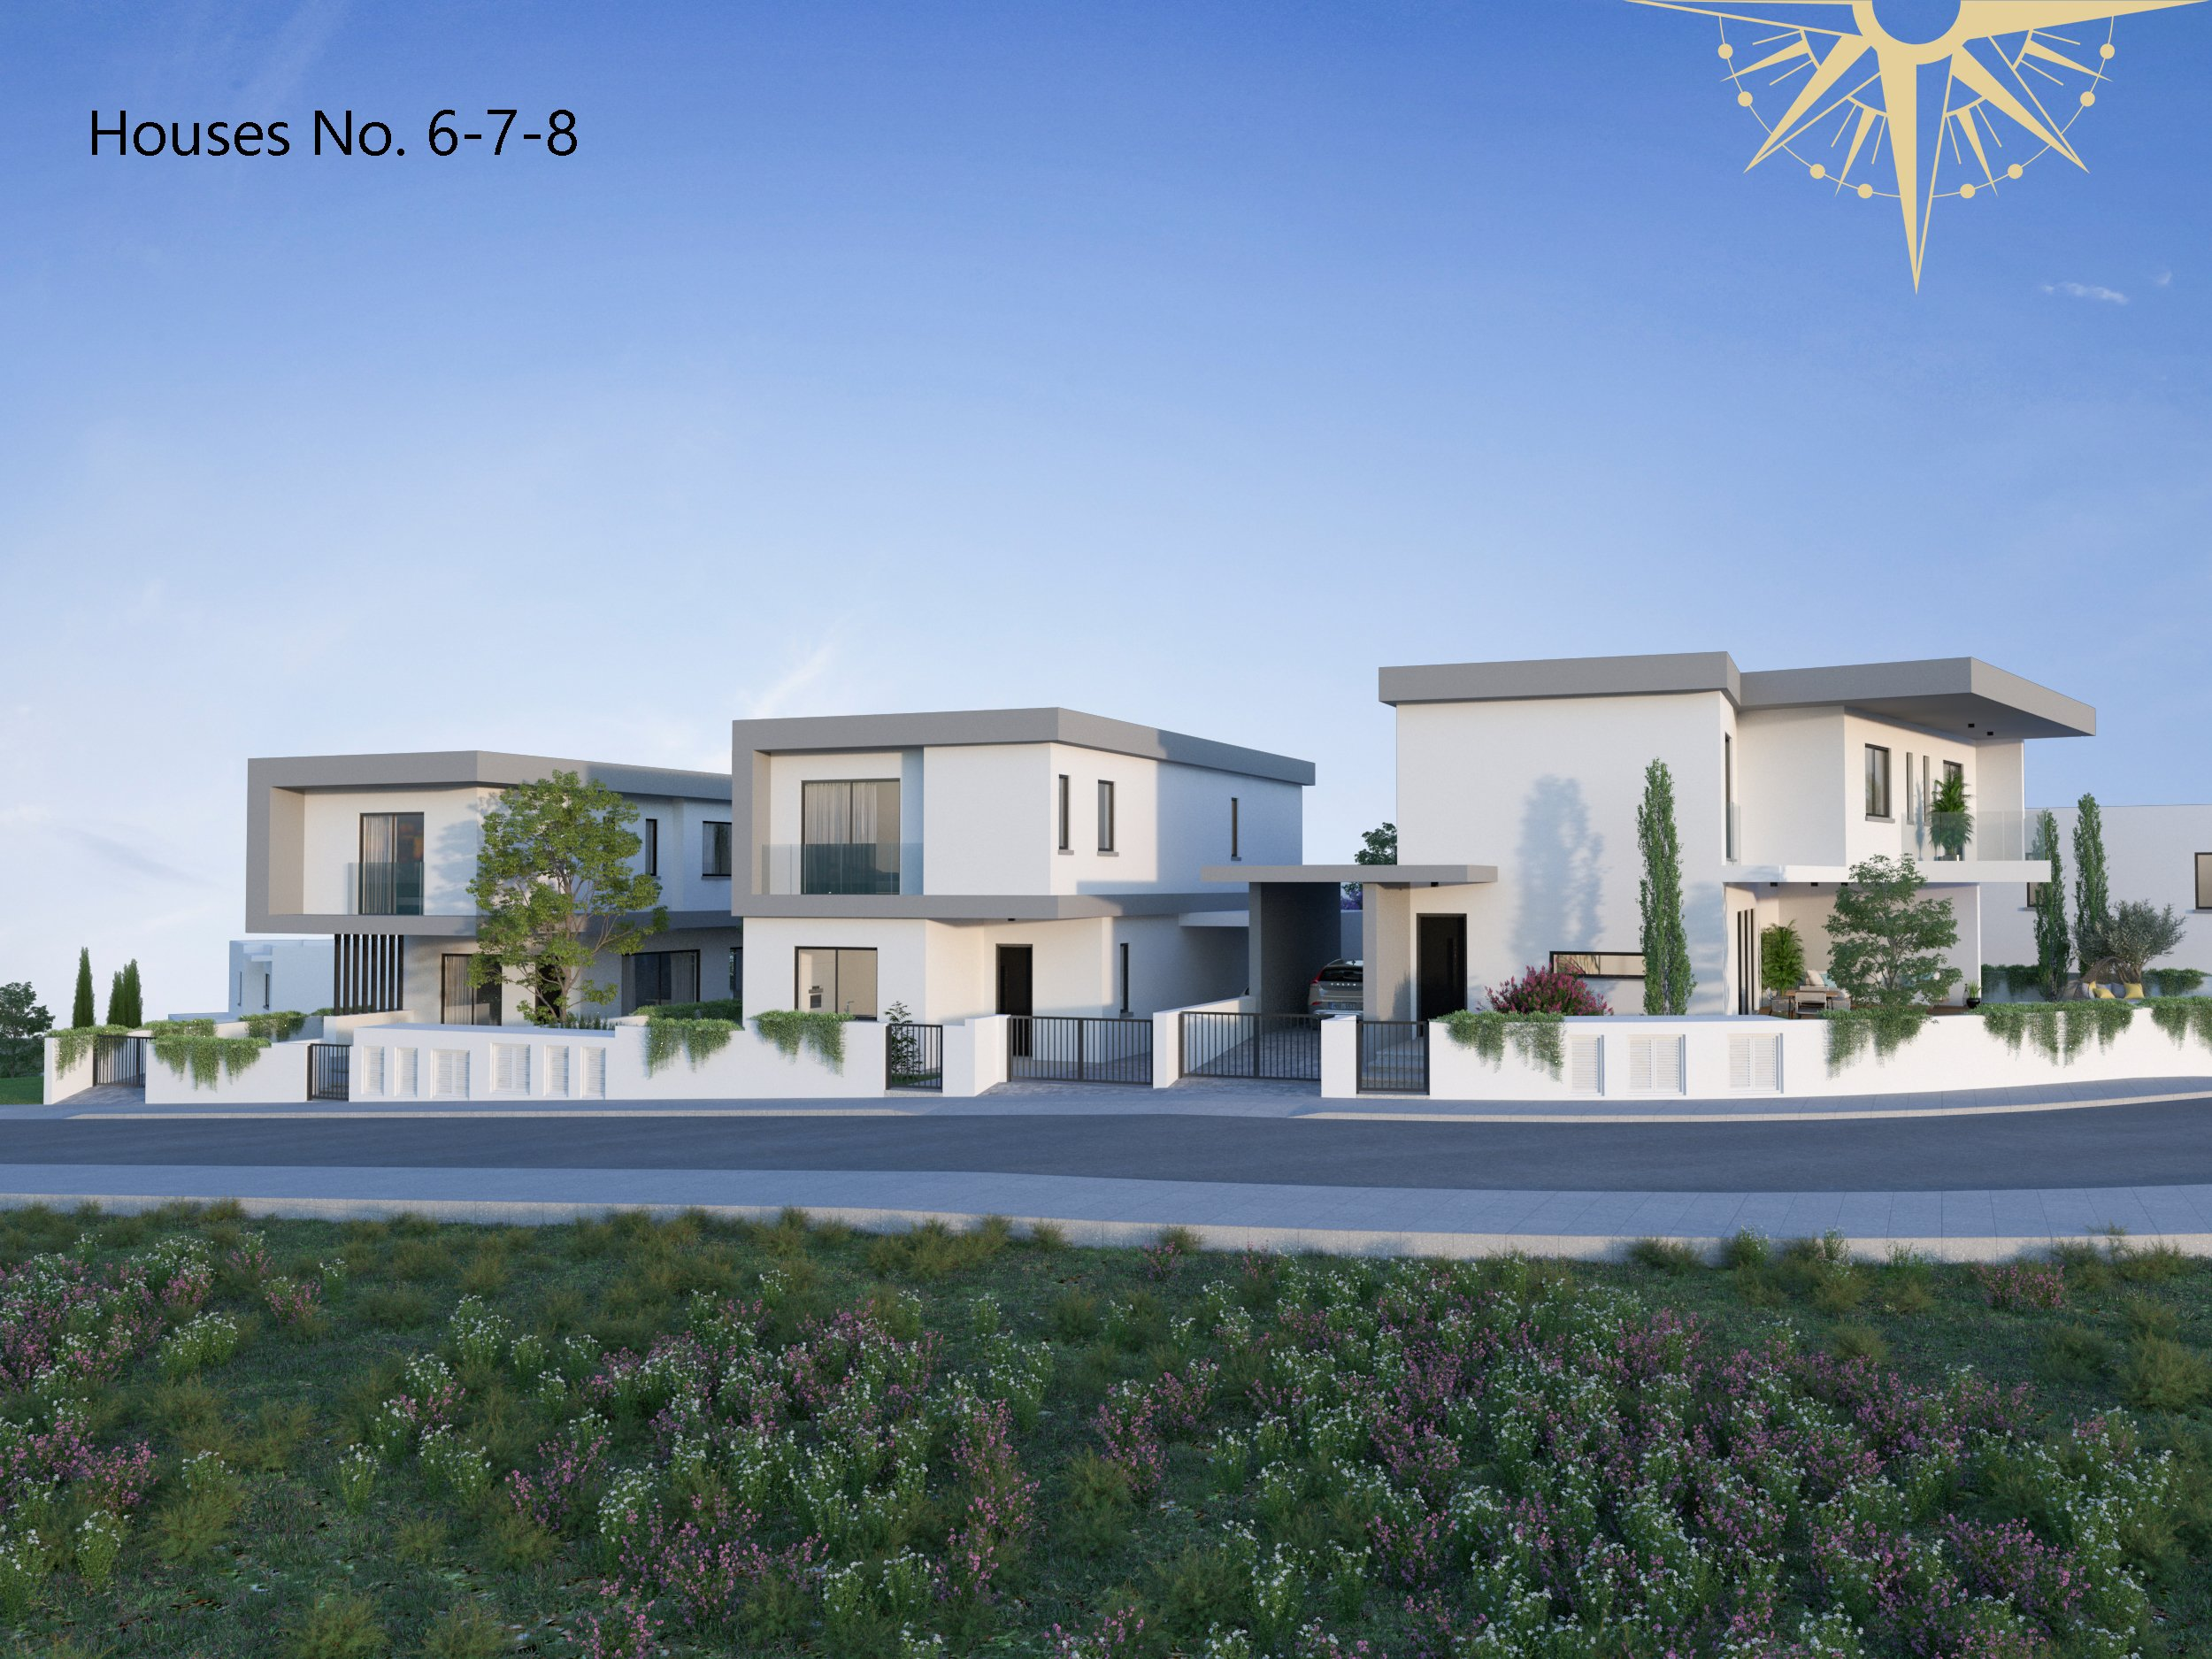 150 SE Project Houses 6-7-8